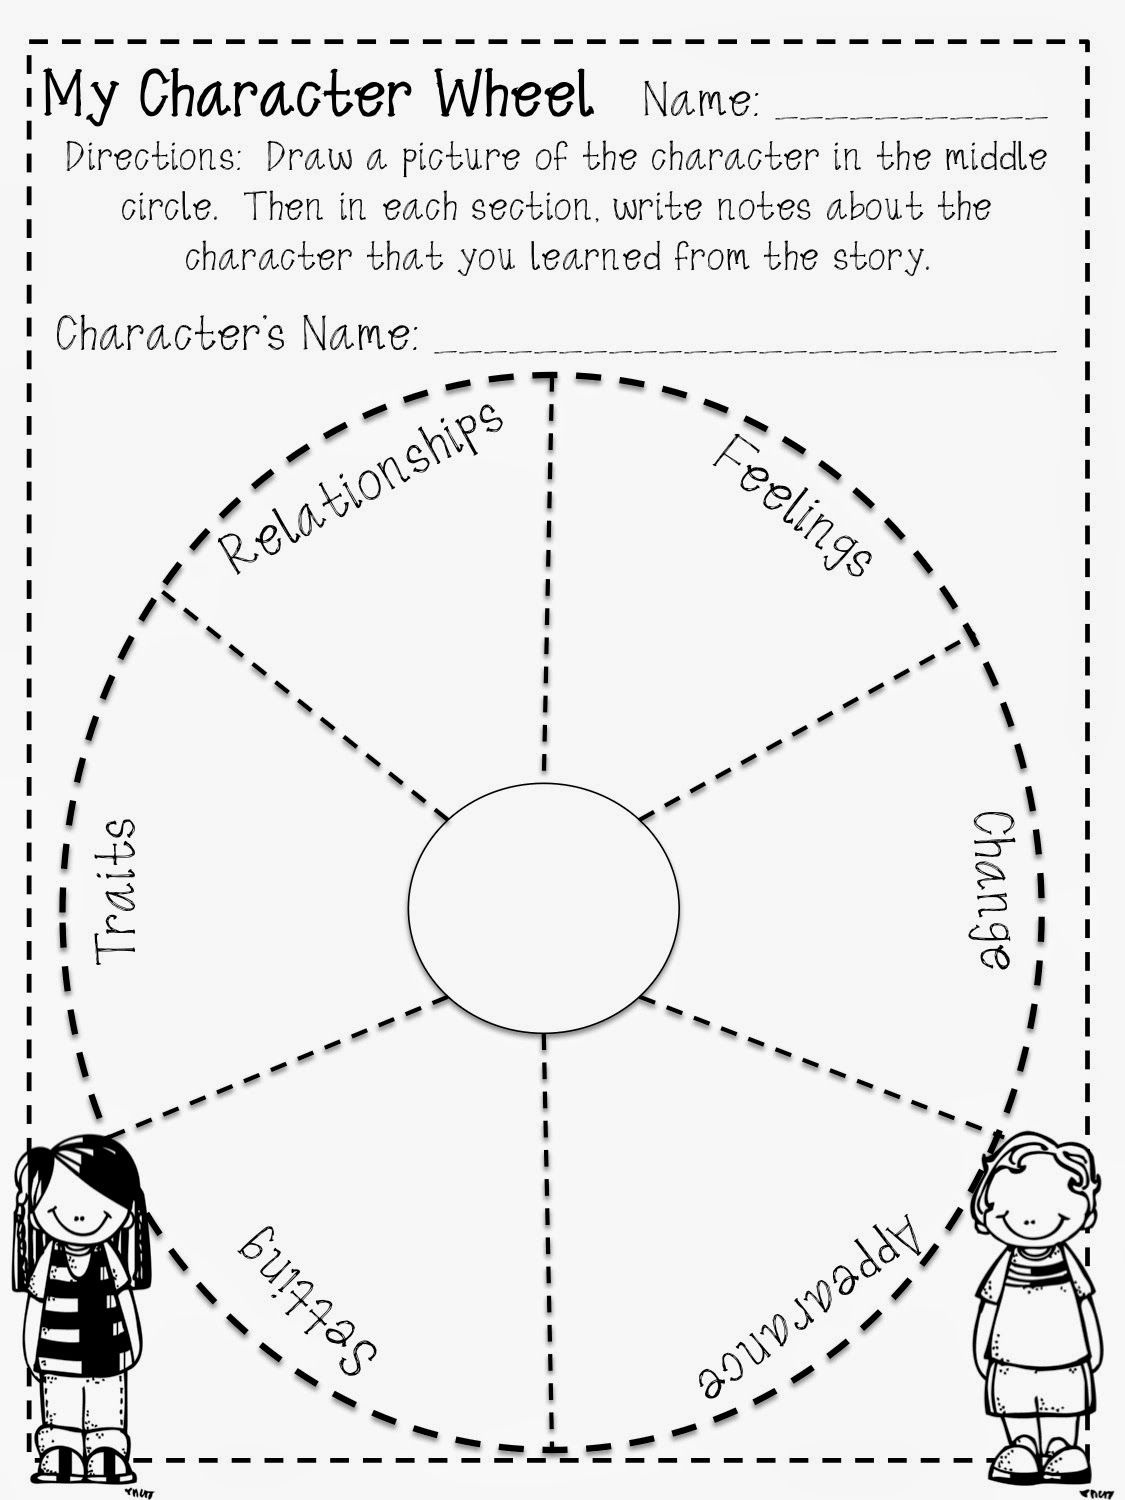 Fun Character Wheel Printable For Any Book! Free!   Teaching 4/5 - Free Printable Character Traits Graphic Organizer